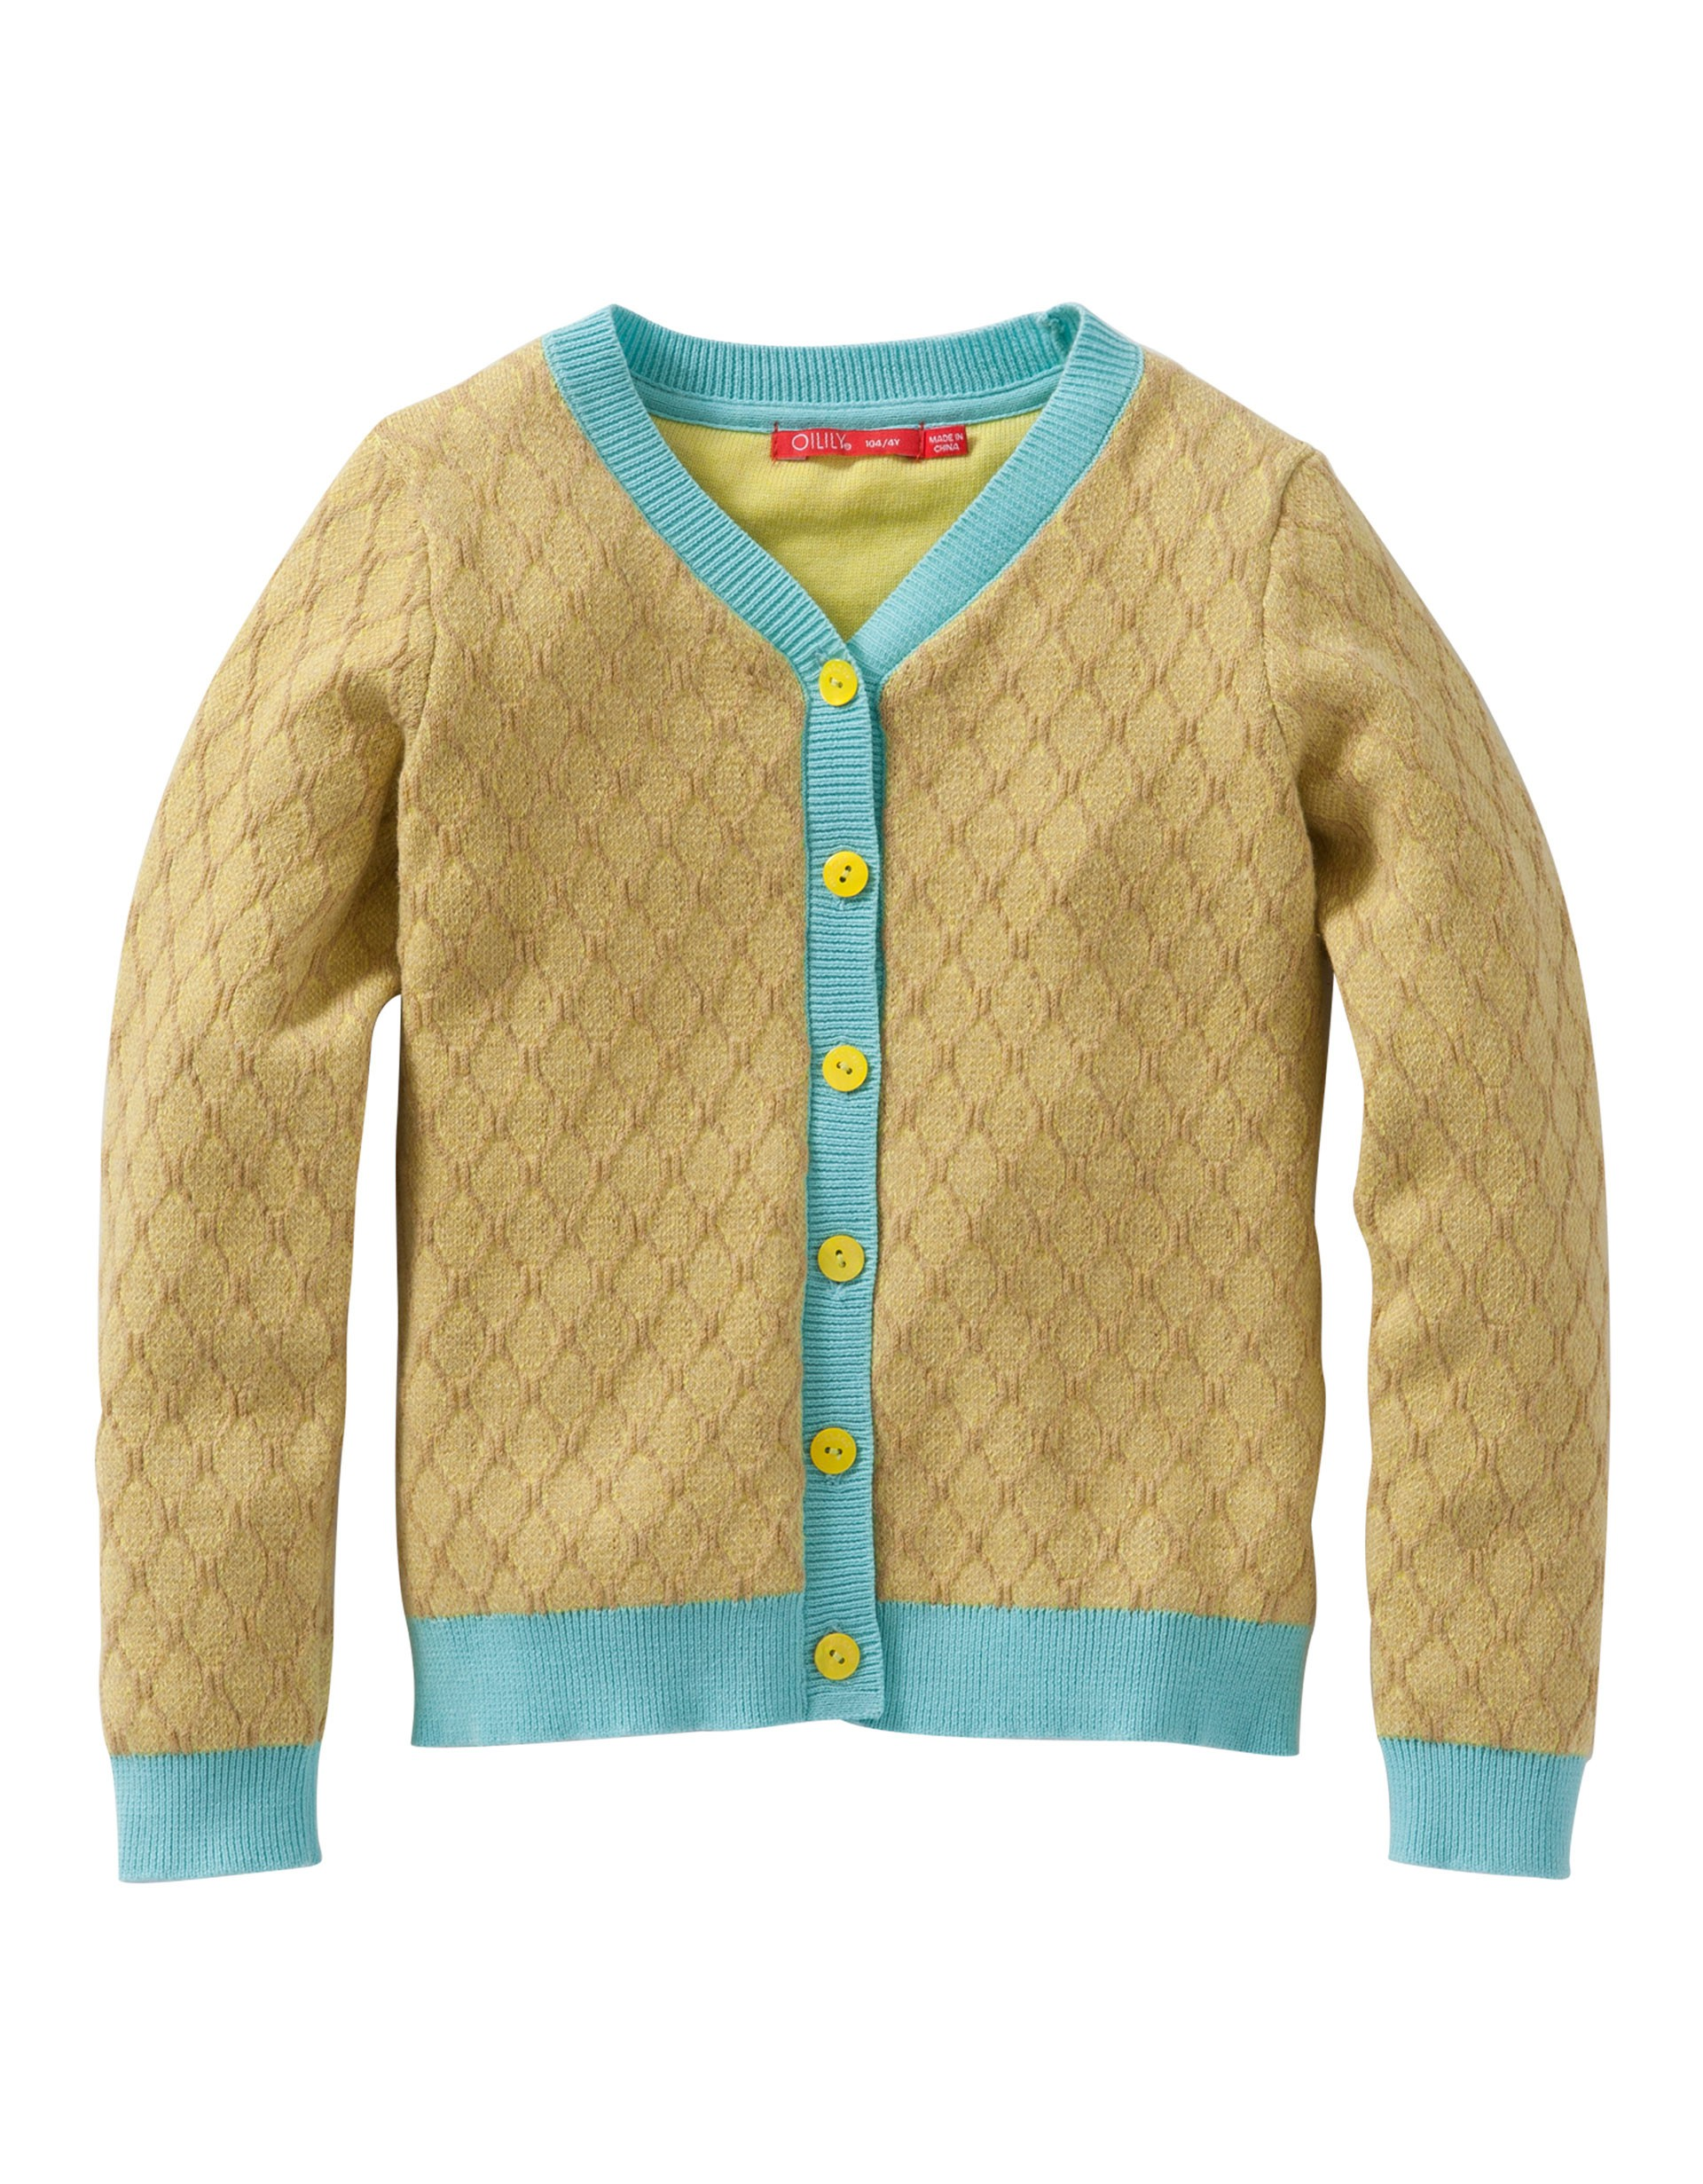 Kootje cardigan yellow-green